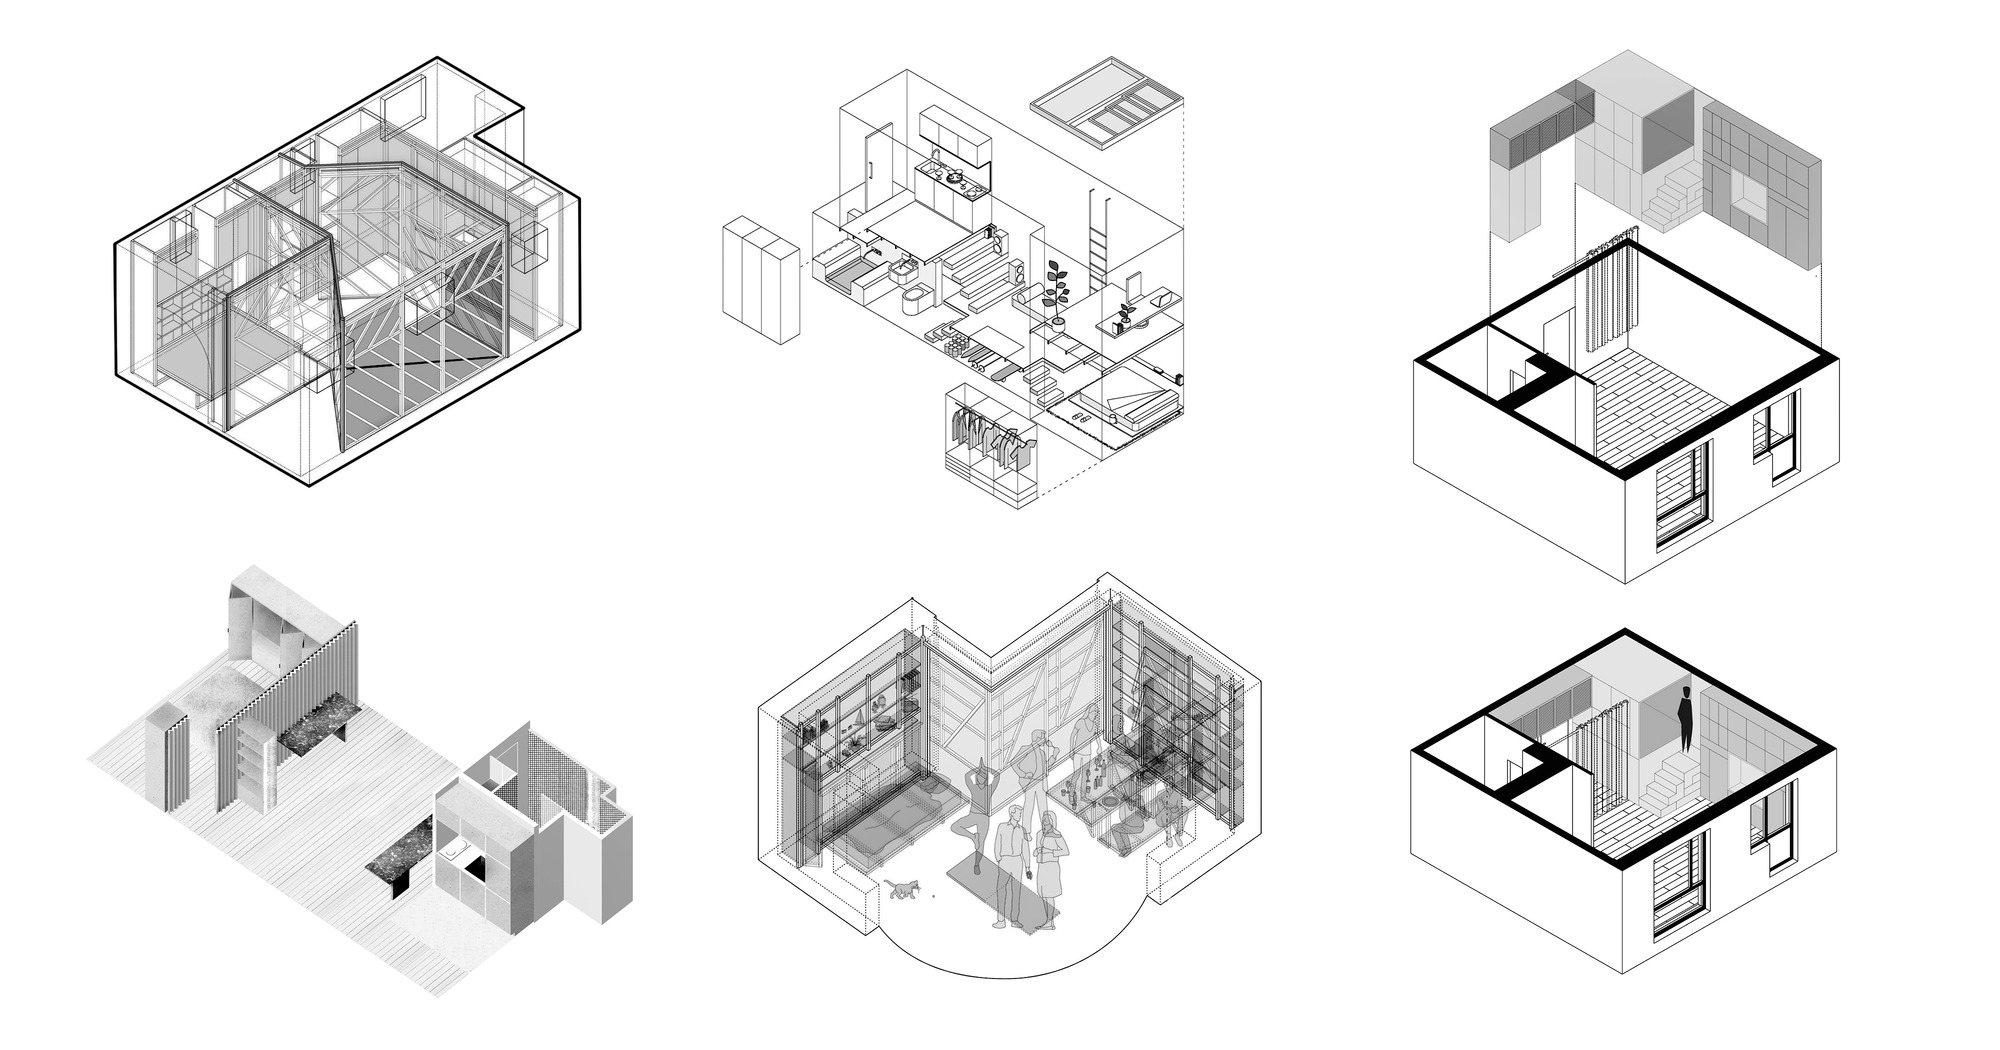 10 Tiny Apartments Under 38 Square Meters and Their Axonometric Drawings